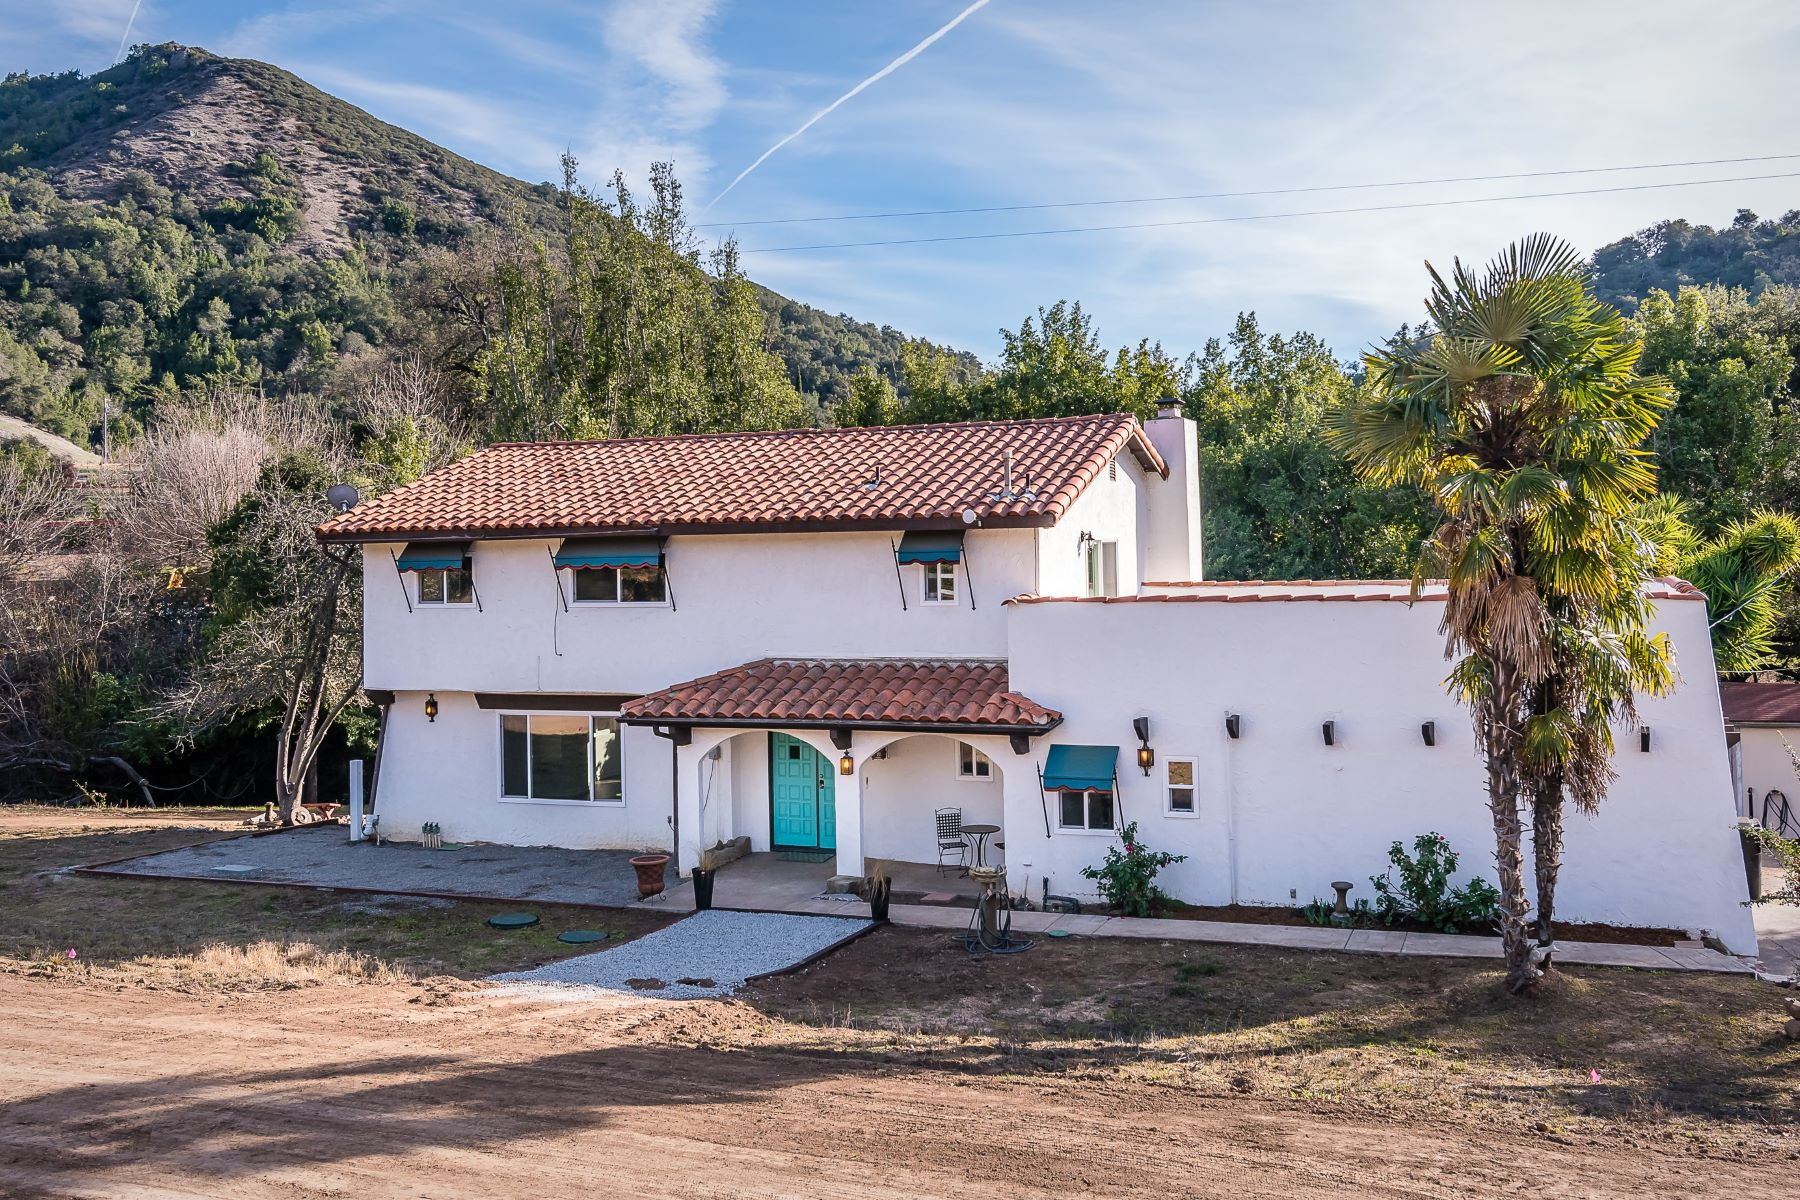 Single Family Home for Sale at Spanish Hacienda Home on 1.64± Acres 14595 Morro Road Atascadero, California 93422 United States